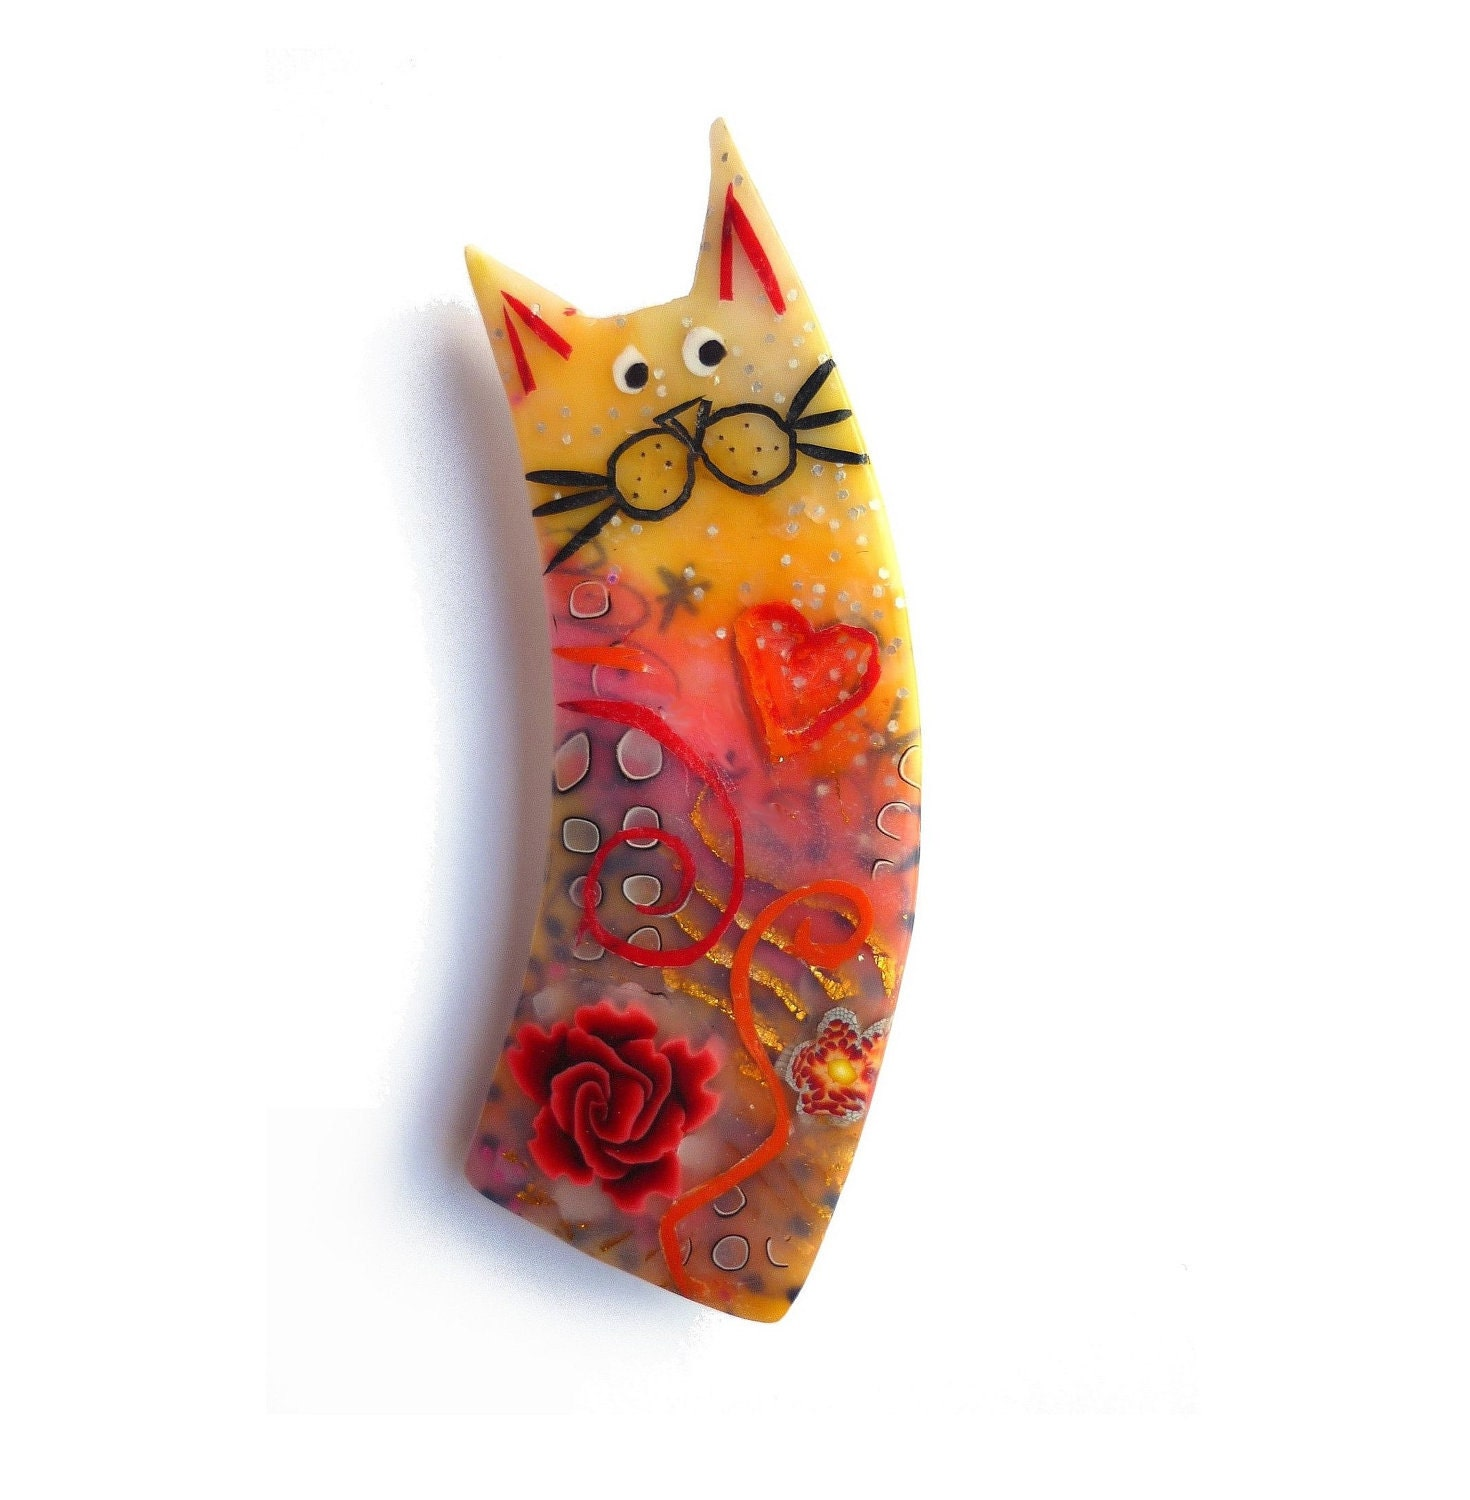 Cat brooch ELISA - Unique Art Brooch - polymer clay kitty, orange yellow red, chat - OOAK - Chifonie